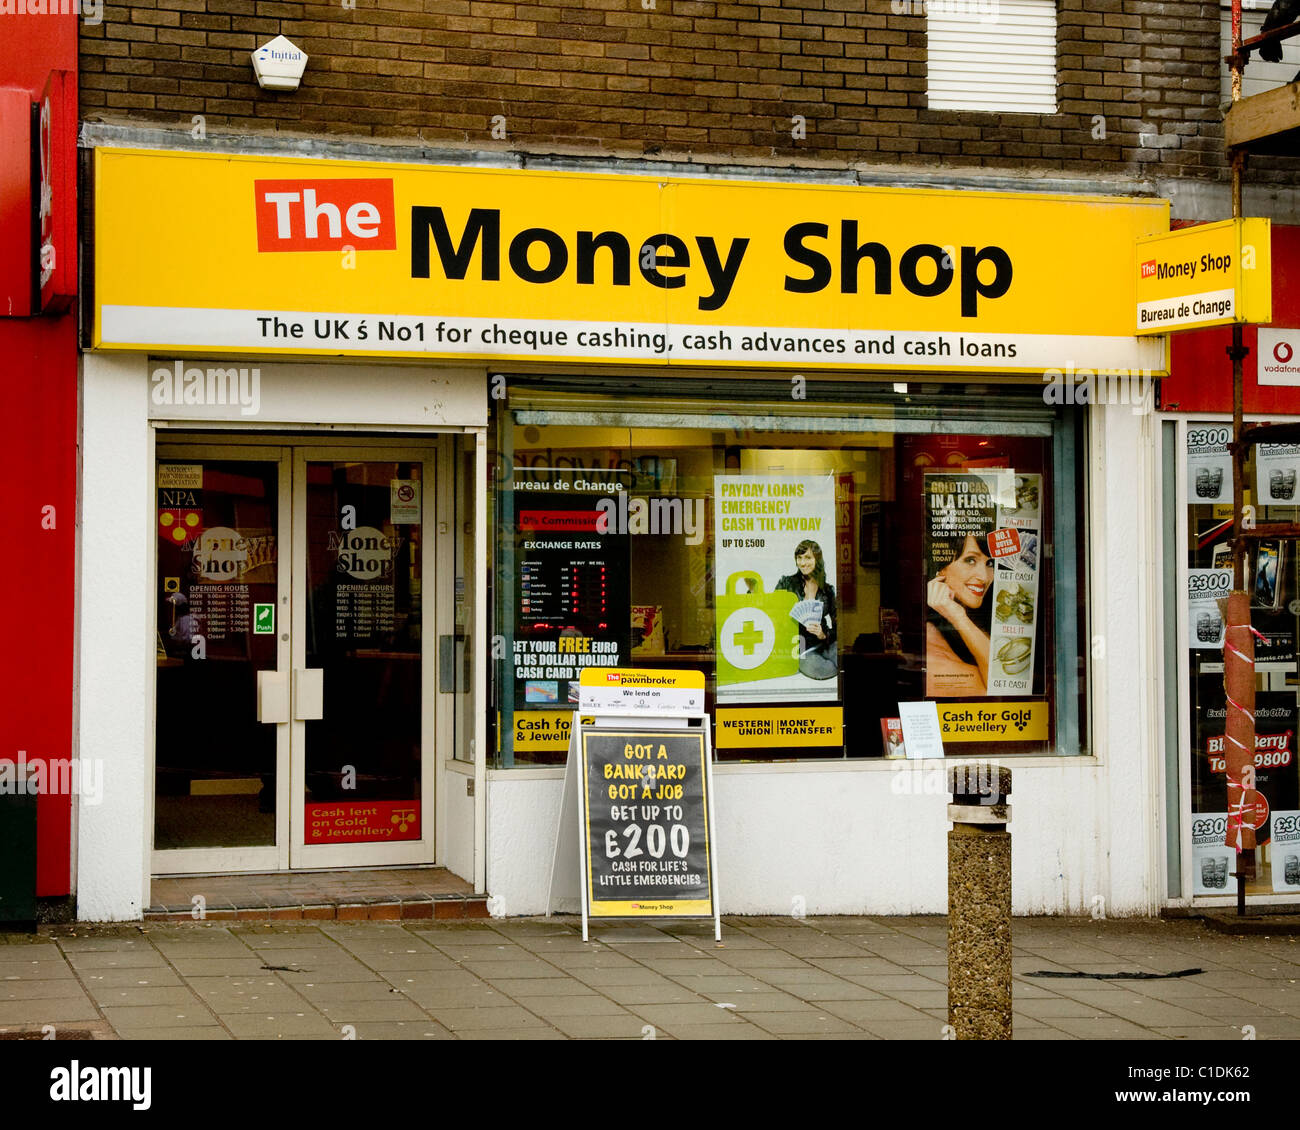 The Money Shop Greenock for  Forex, loans, cash advances and  No.1 for cheque cashing. - Stock Image